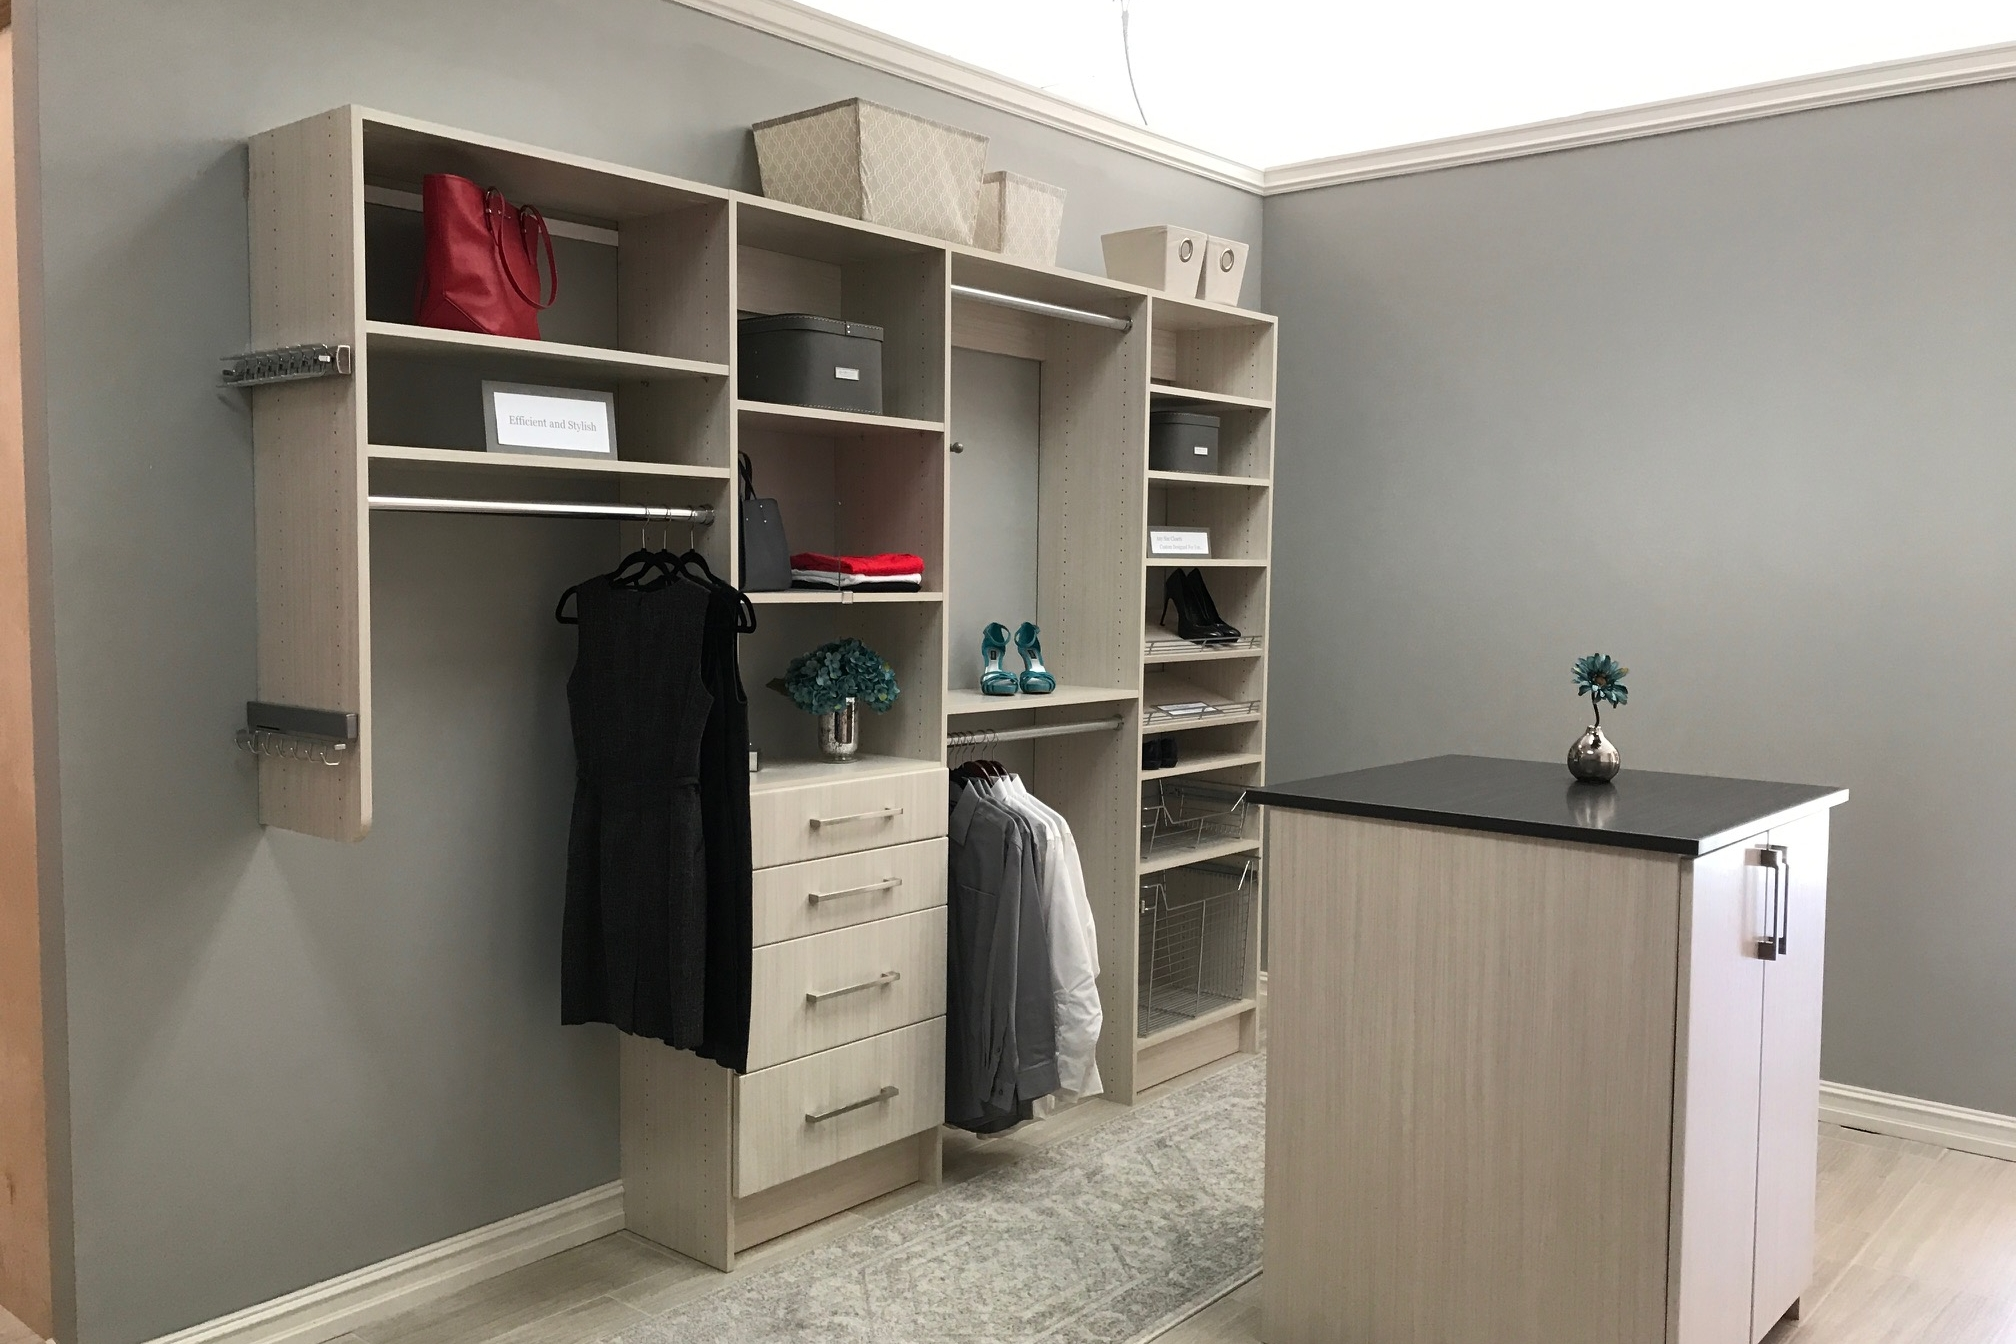 Closets of Tulsa's floor model closet sample is available to view by appointment.